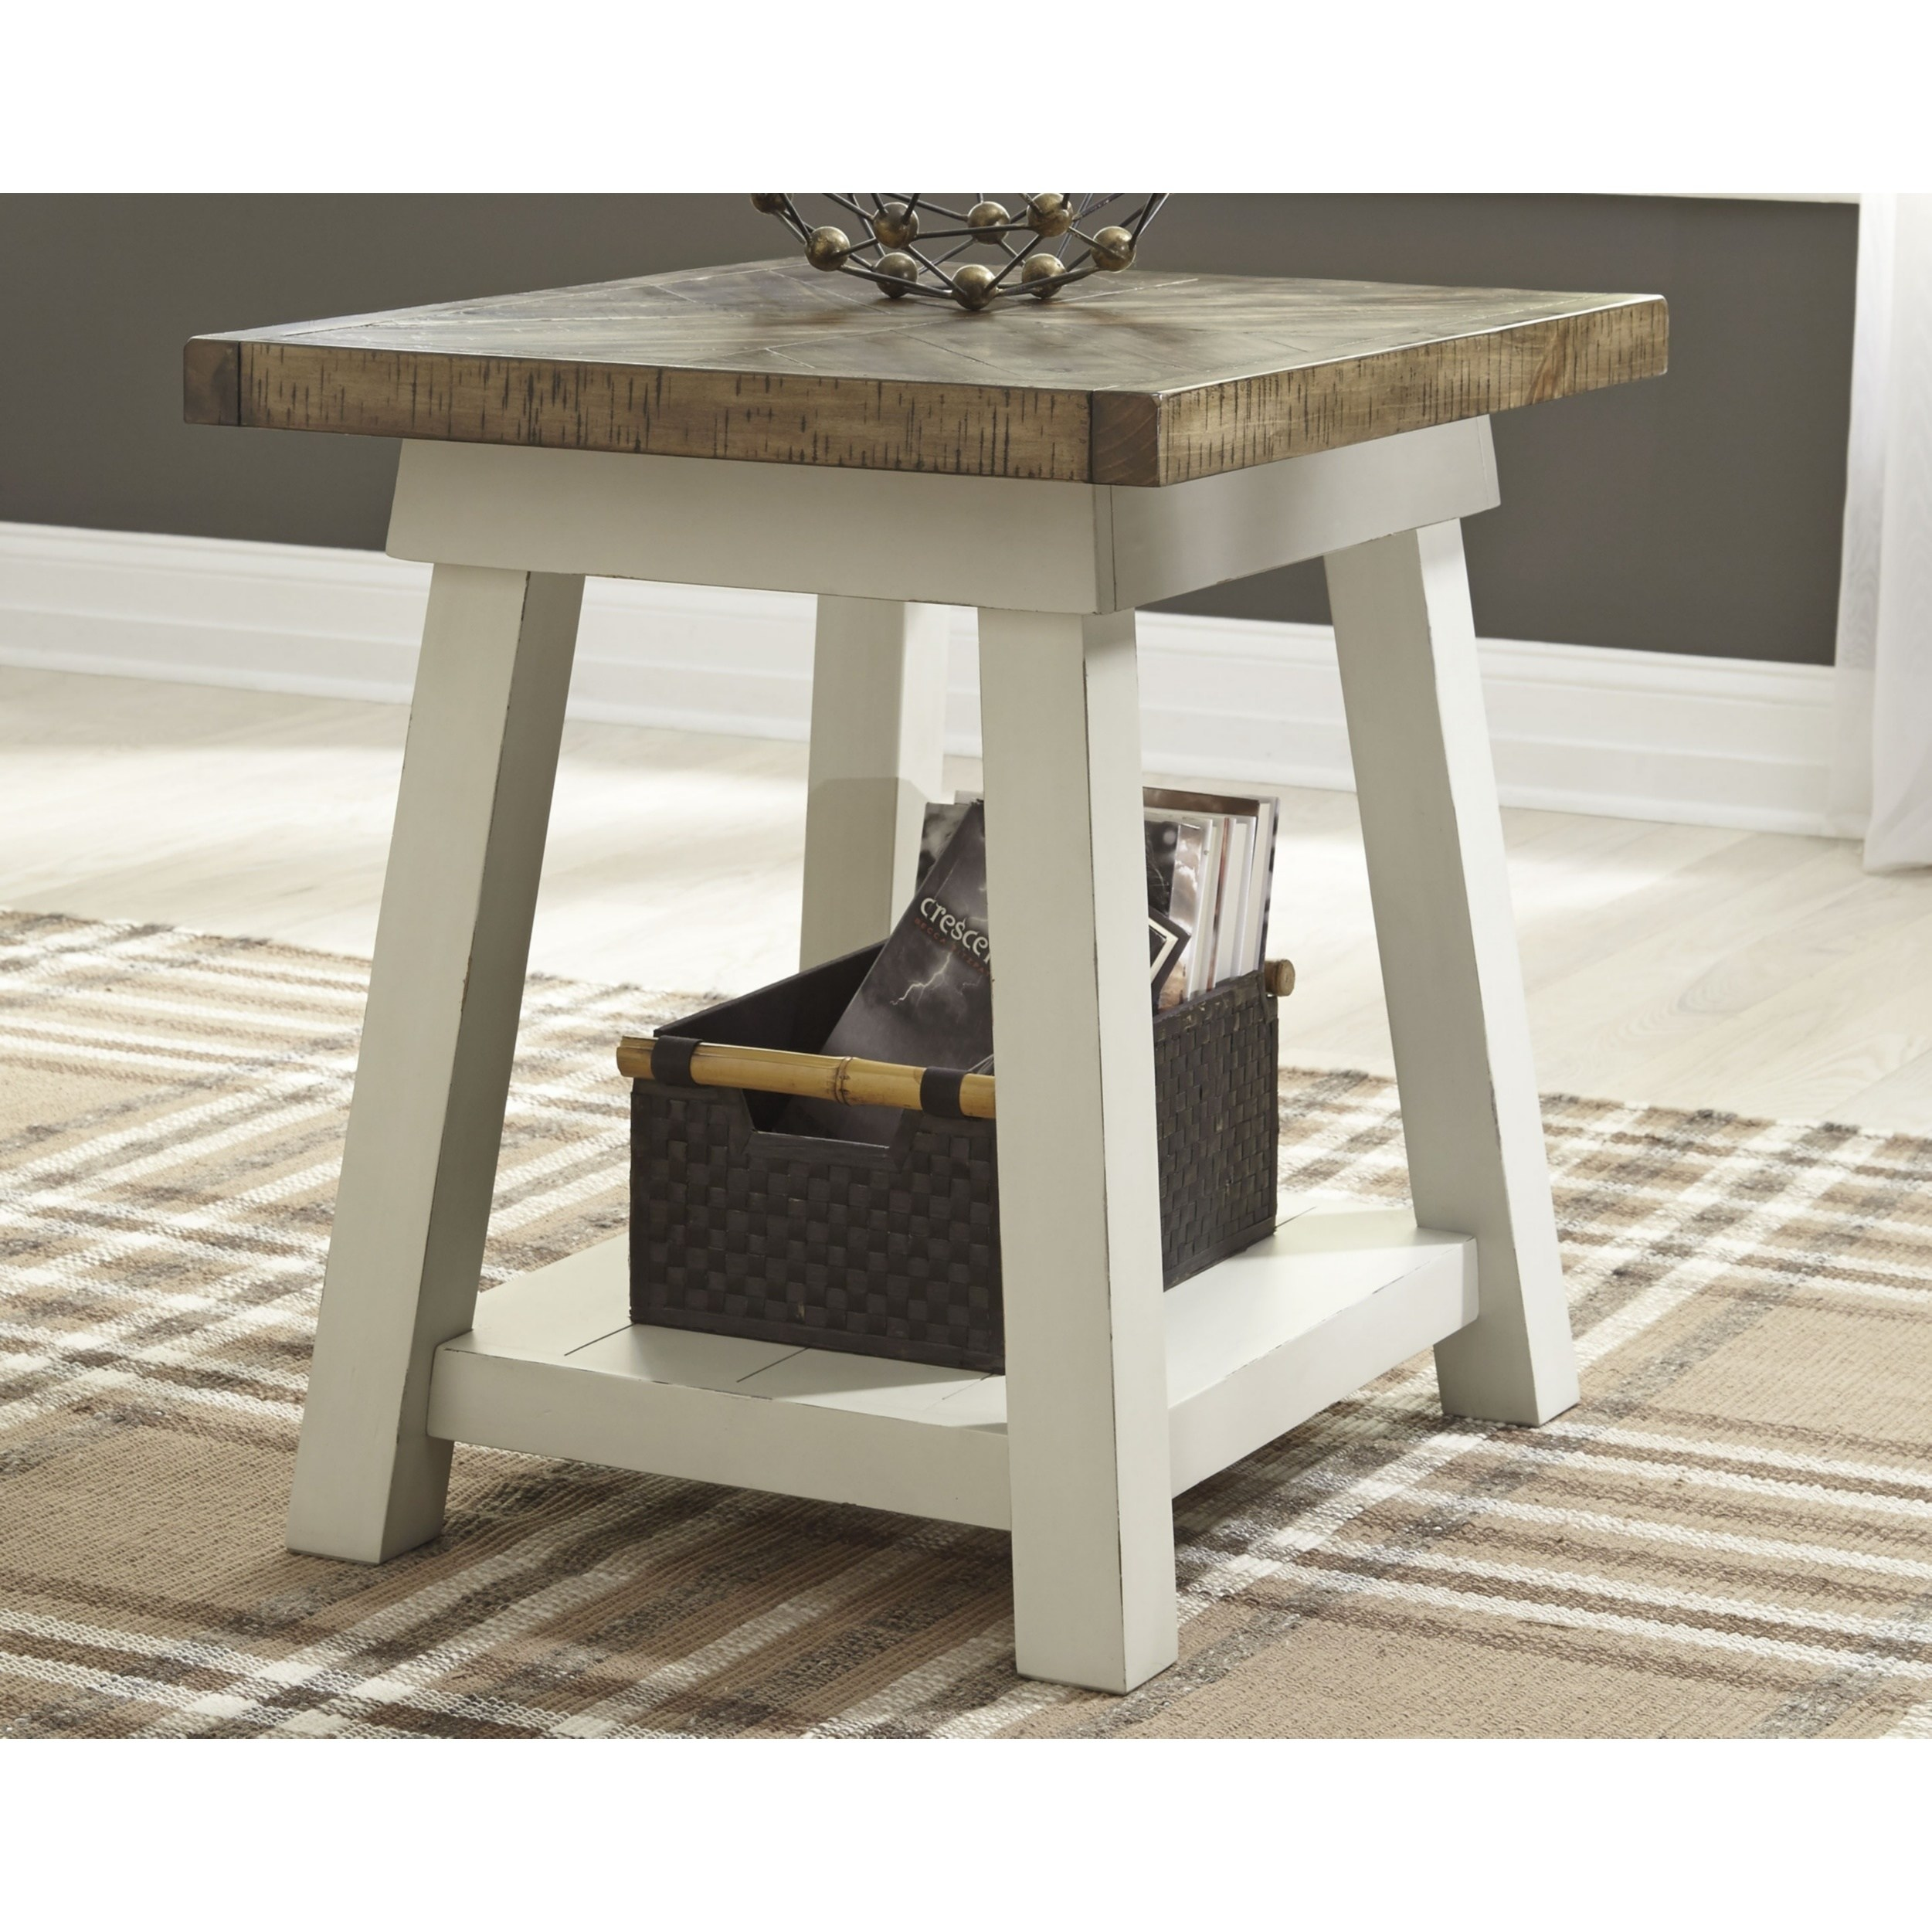 Stownbranner Twotone Casual End Table (Two Tone), Beige